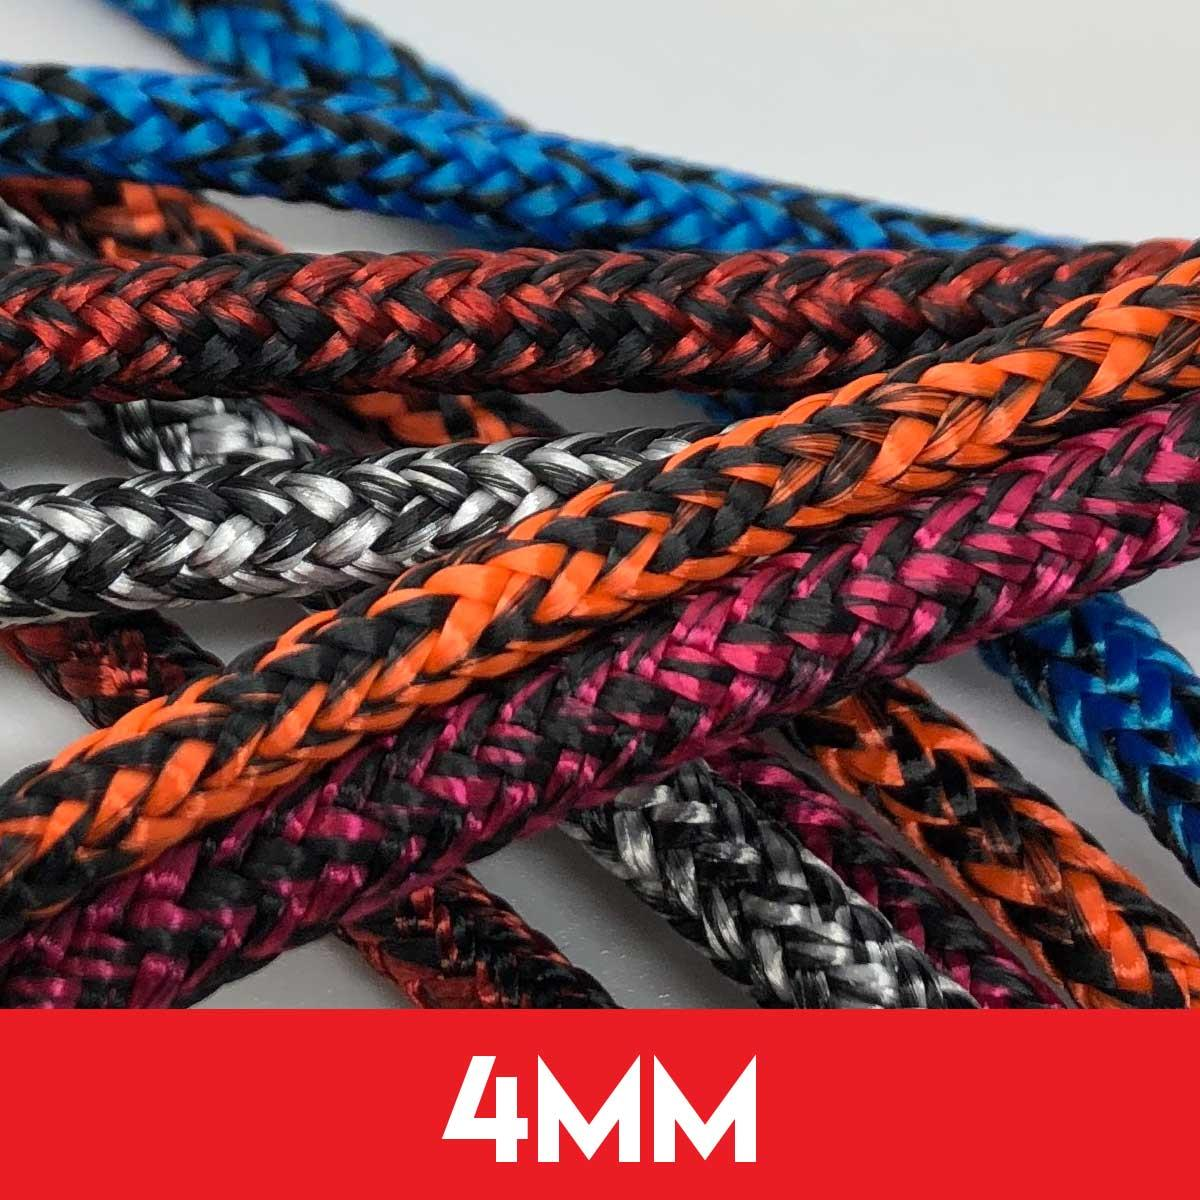 4mm Dyneema Kingfisher Evolution Race Rope